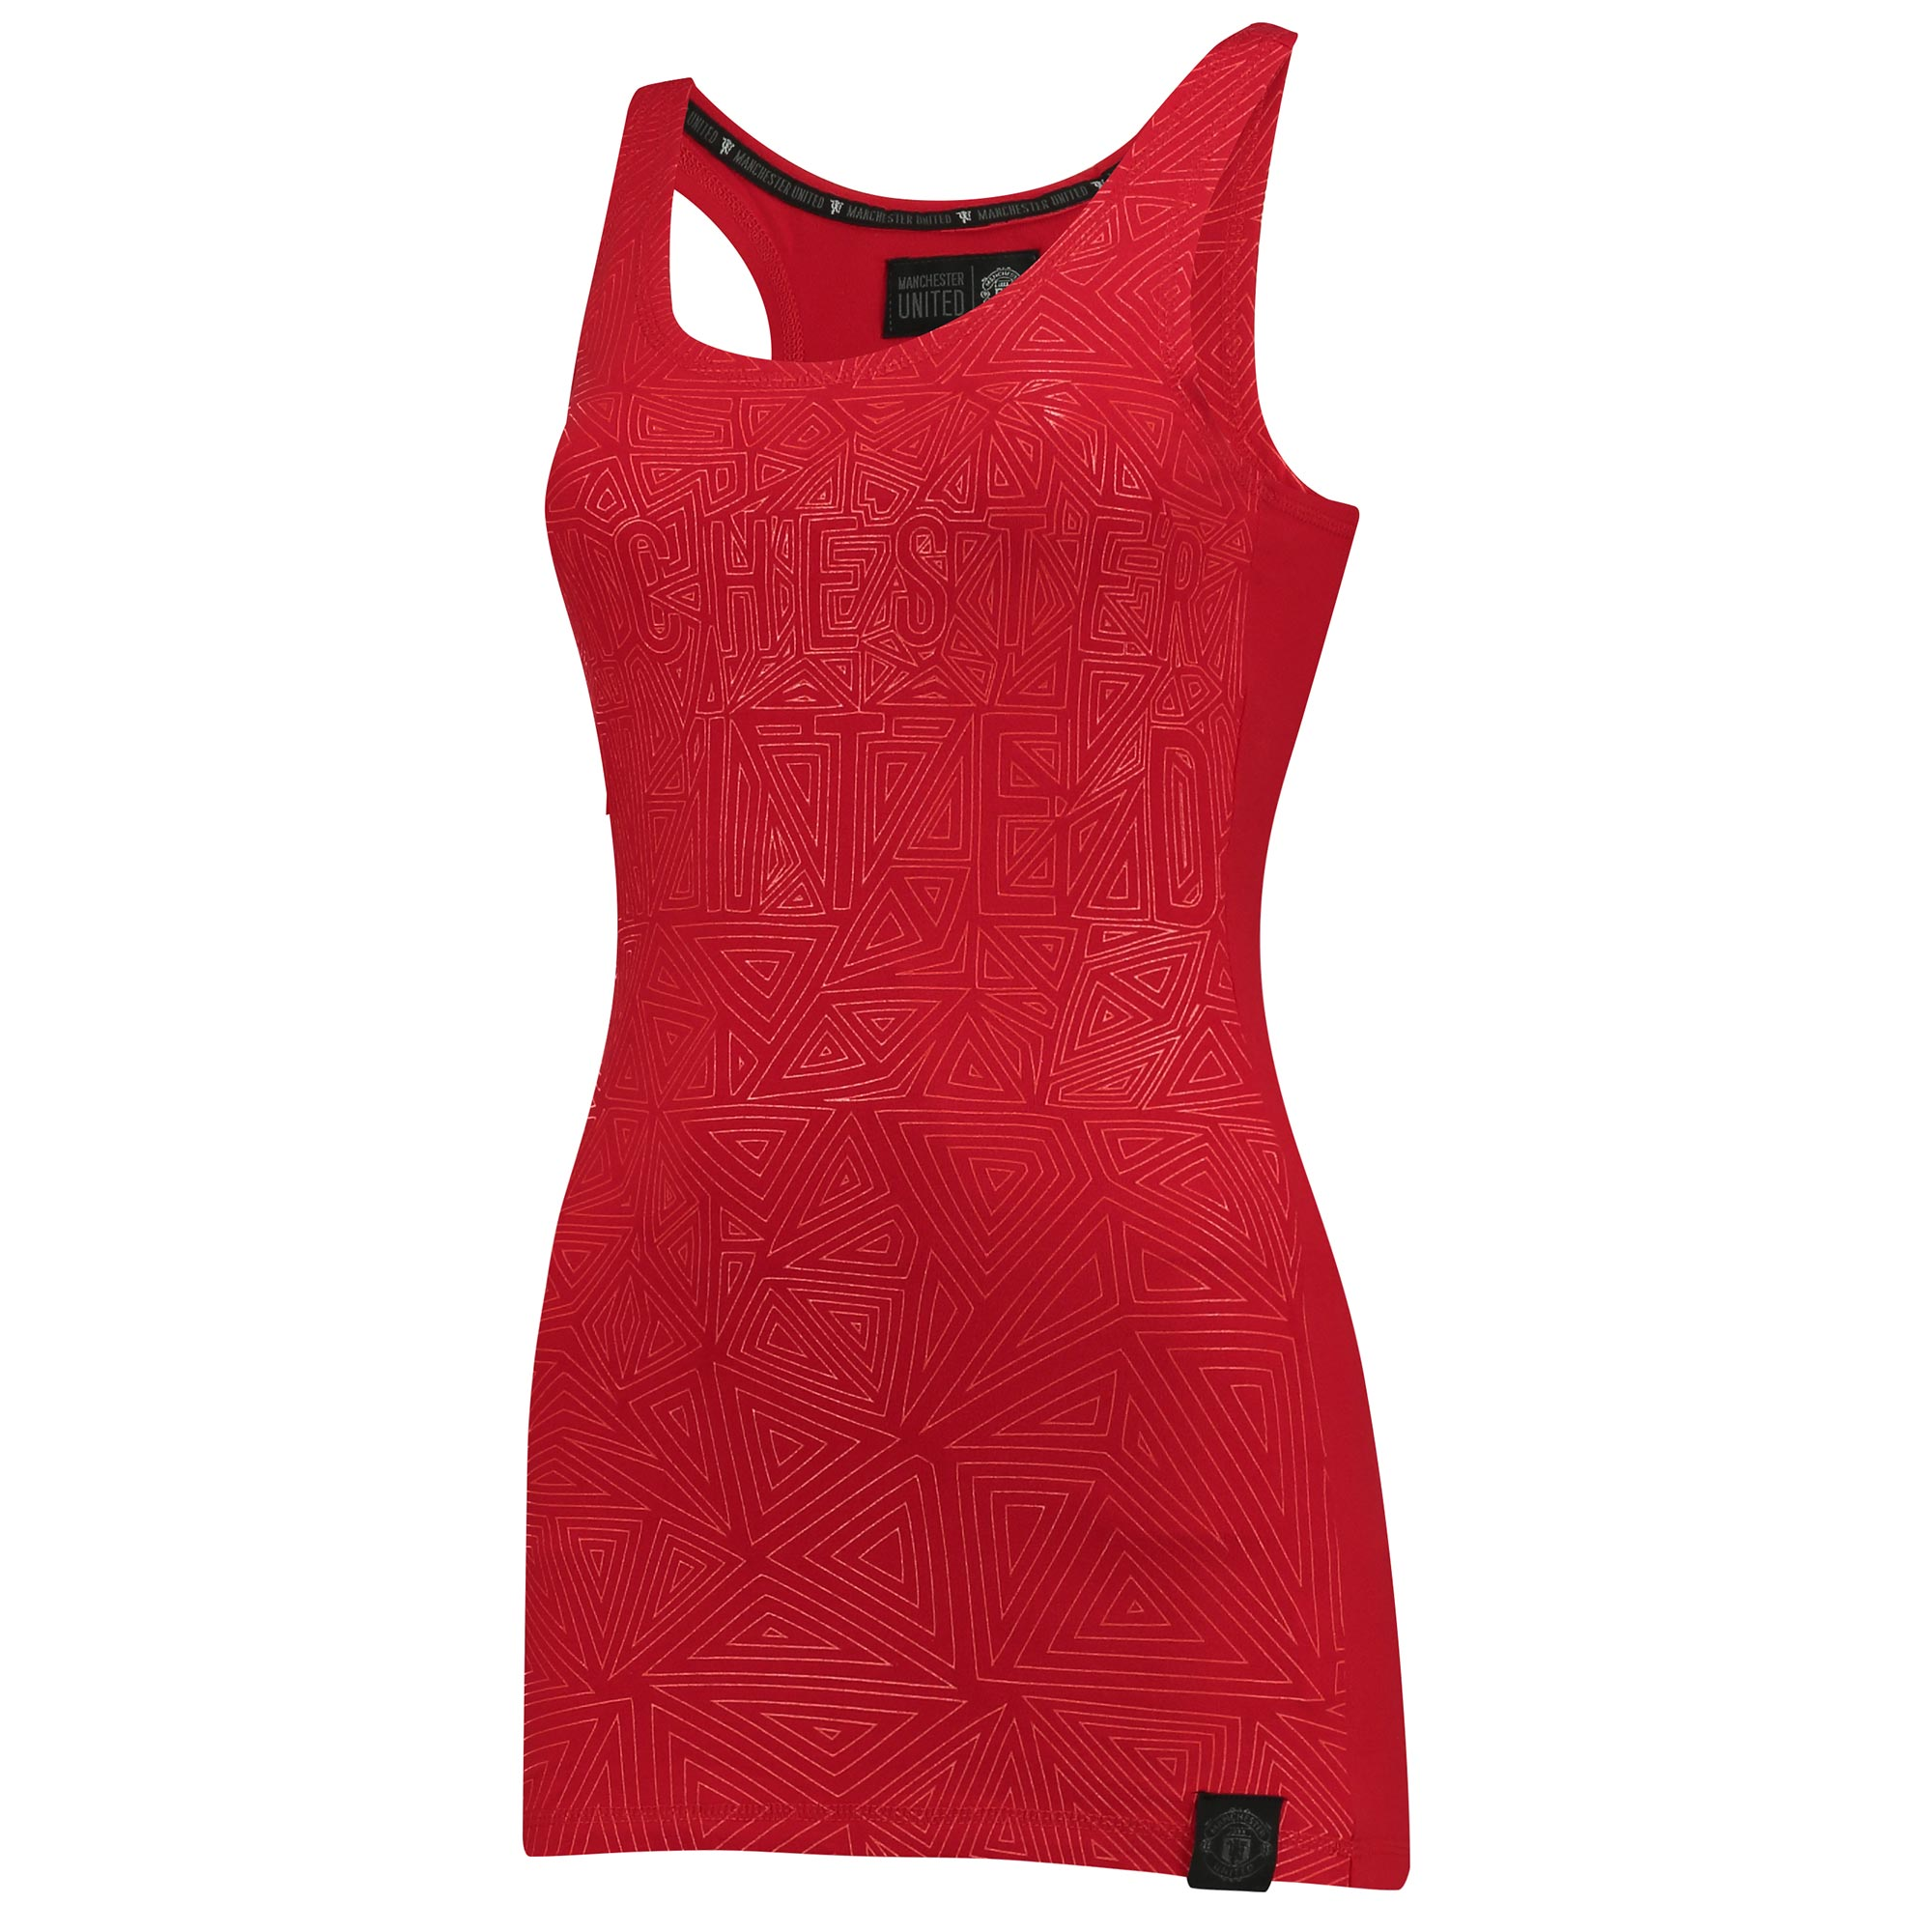 Manchester United Sportswear Racer Back Vest - Red - Womens